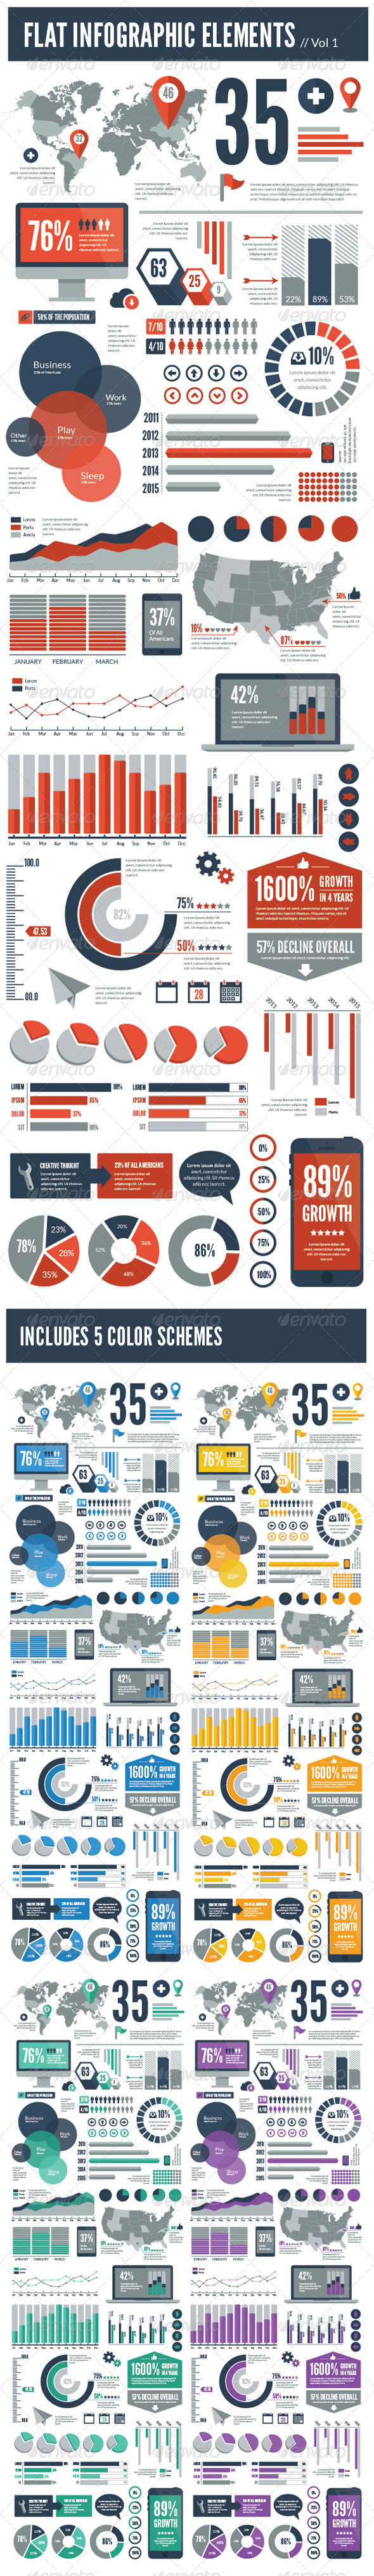 GraphicRiver Flat Vector Infographic Elements 5741110